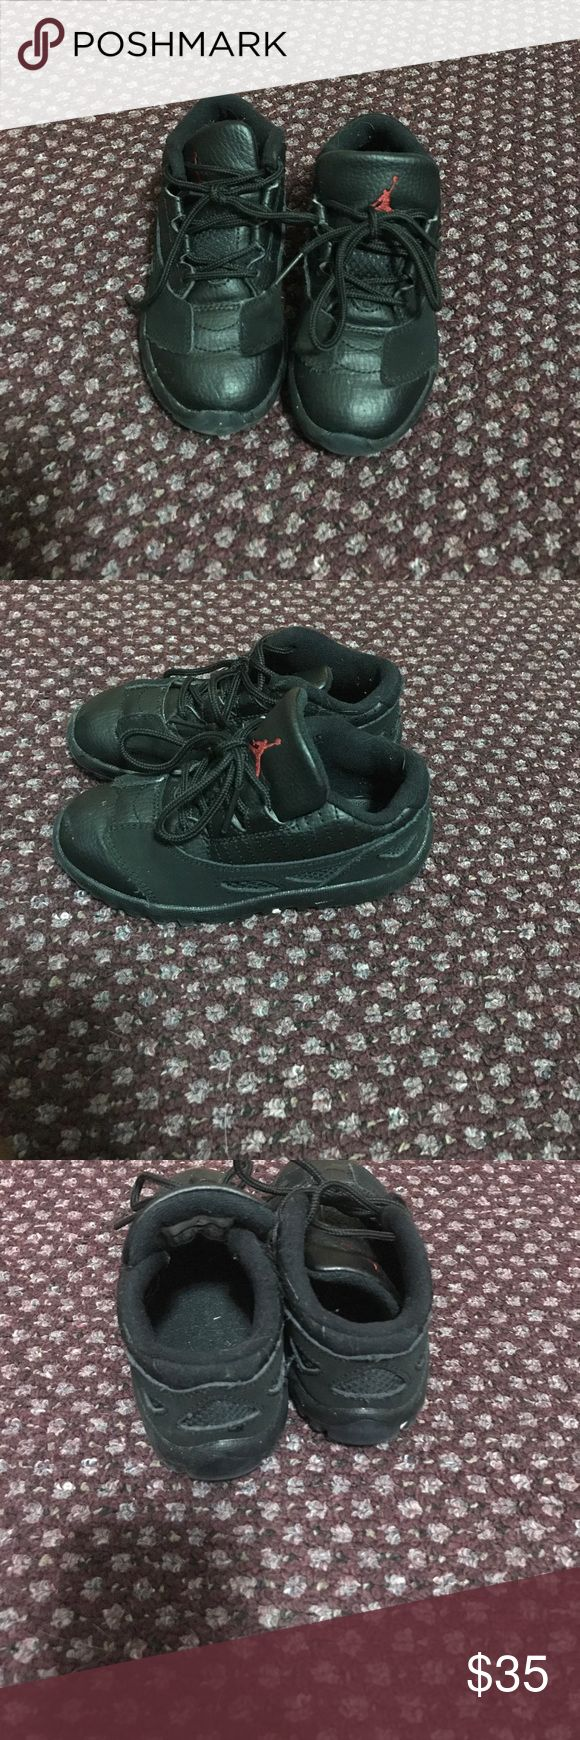 Toddler Jordans Good condition. All black so they can be worn with anything. Jordans Shoes Sneakers